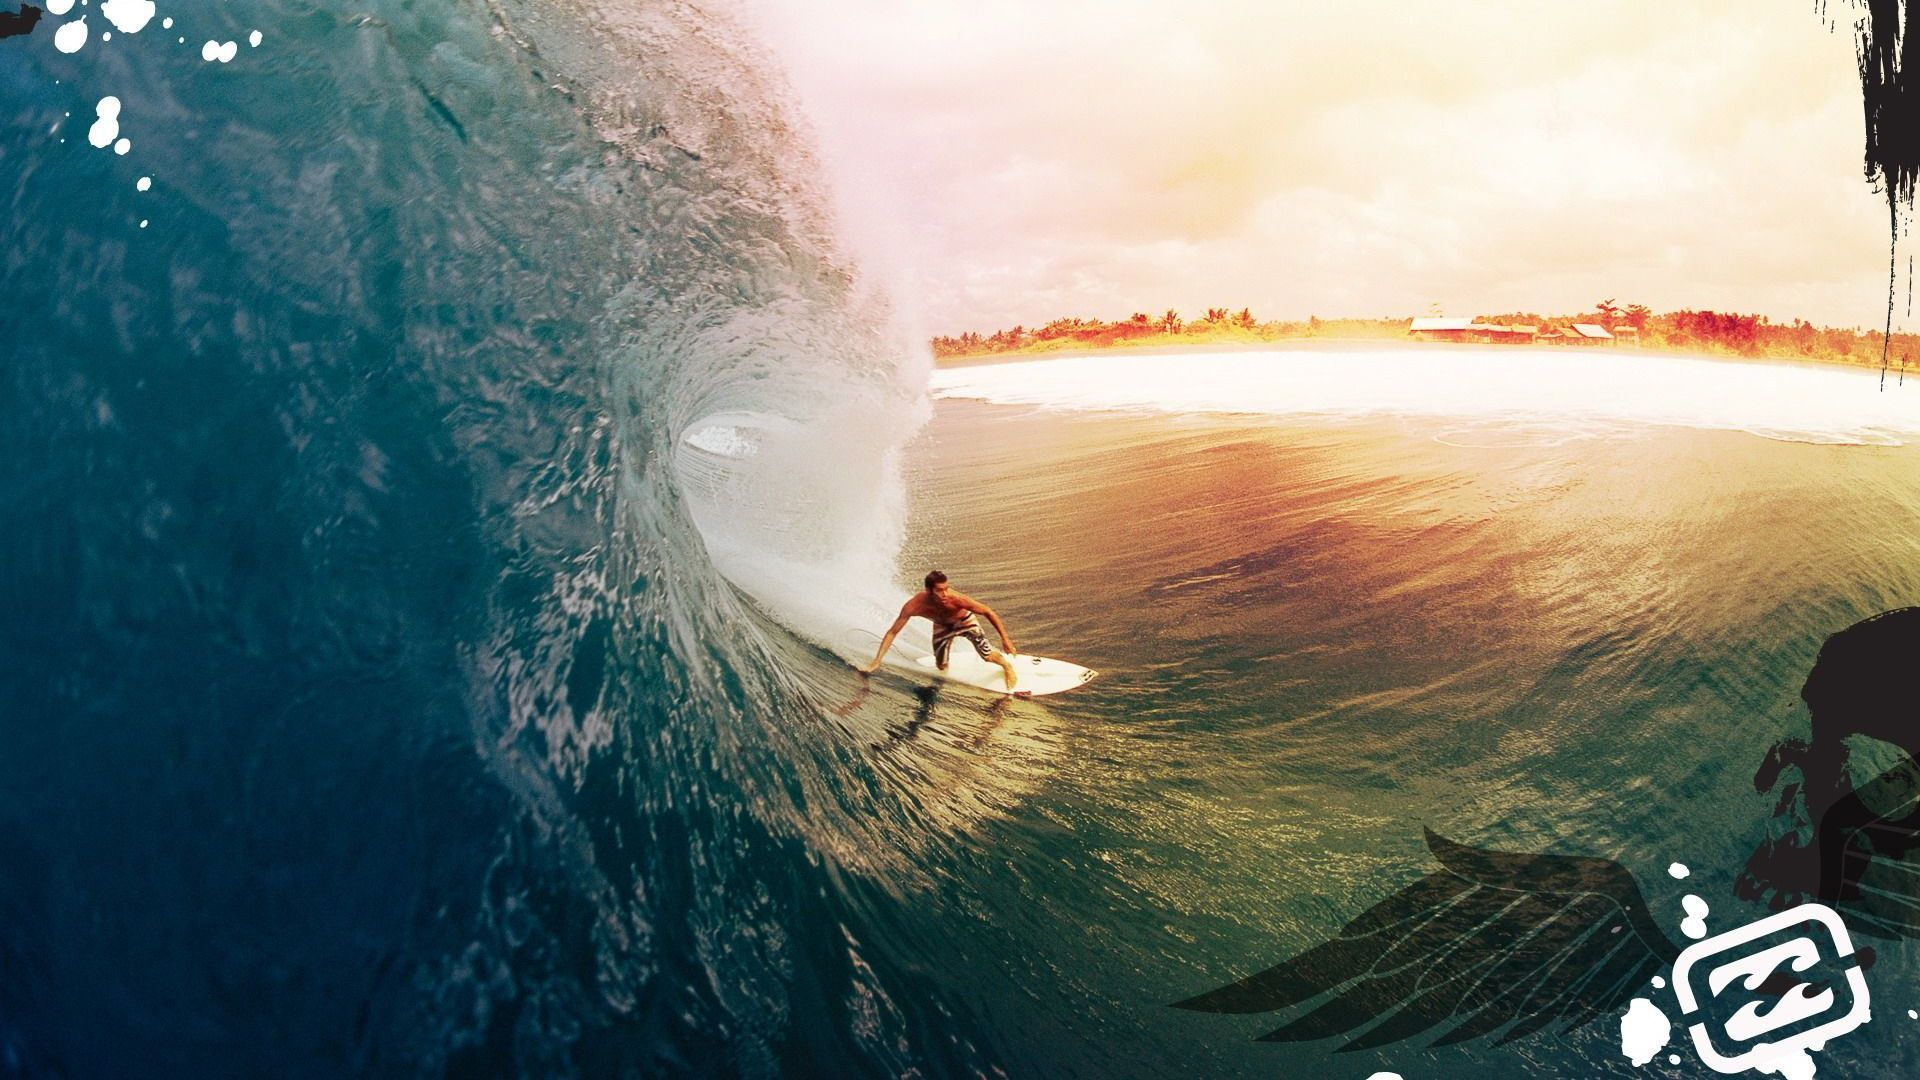 Surfer Wallpapers CNSouP Collections Big Wave Surfing